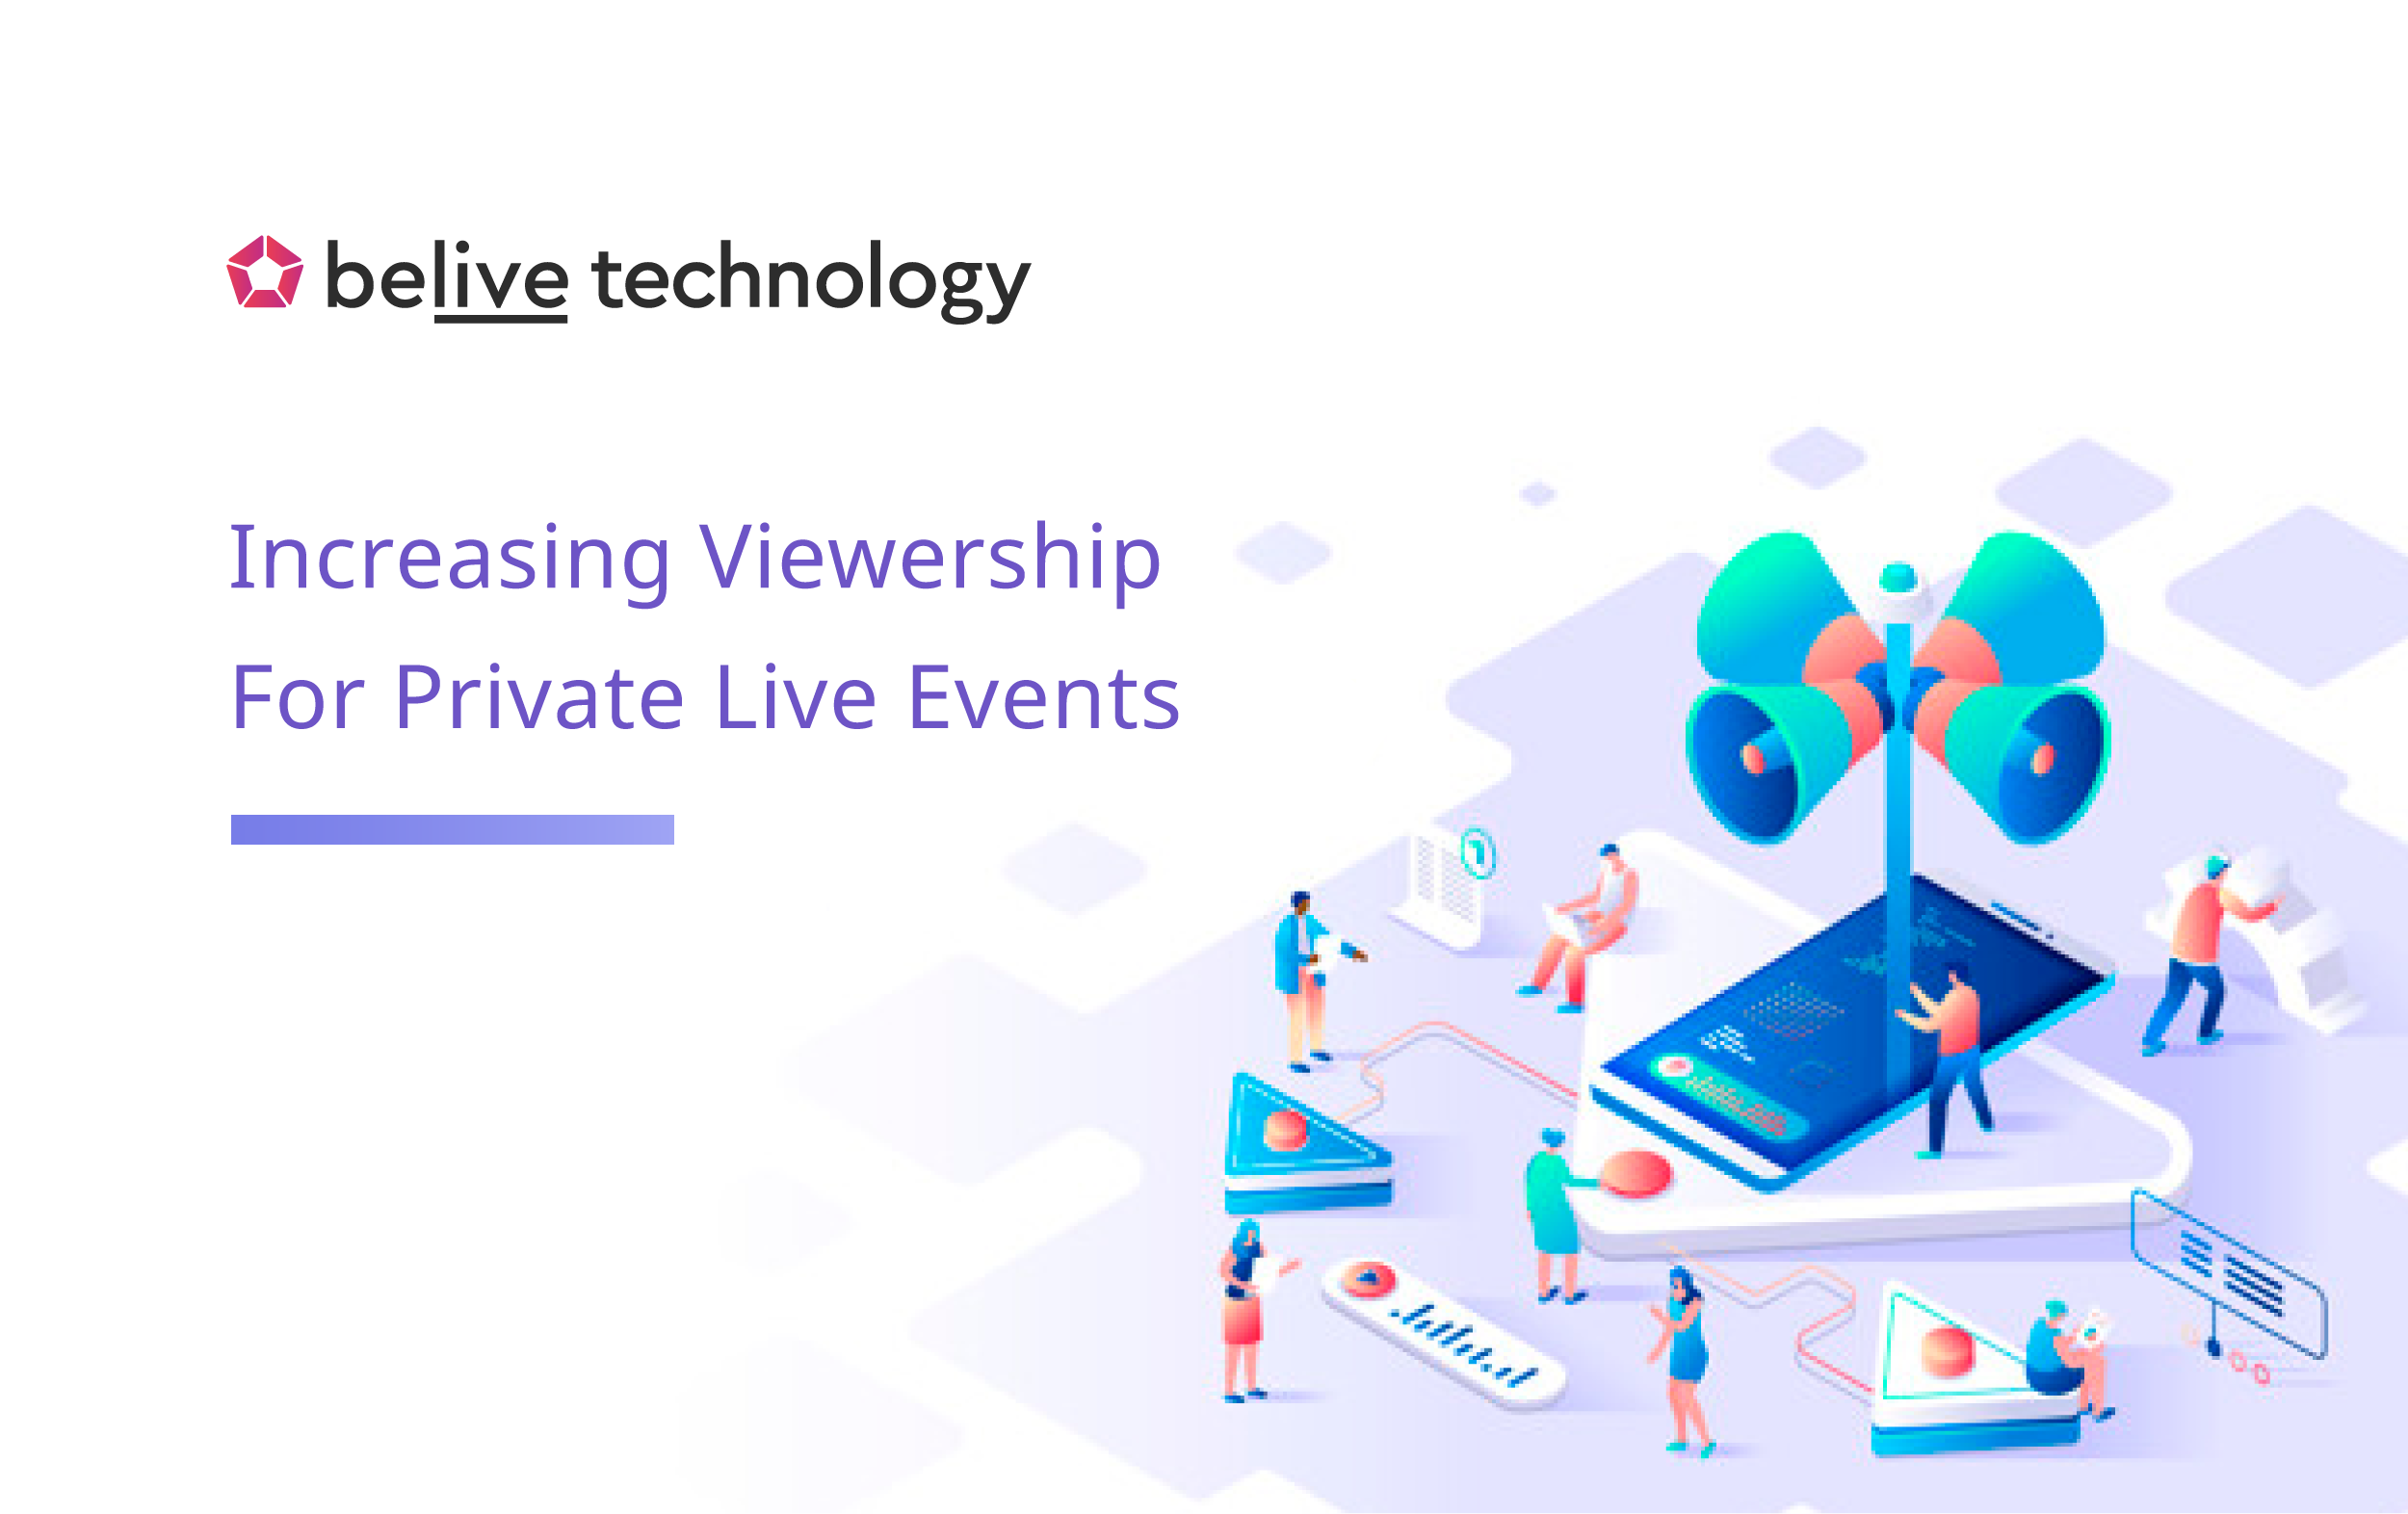 How To Increase Viewership For Private Live Events